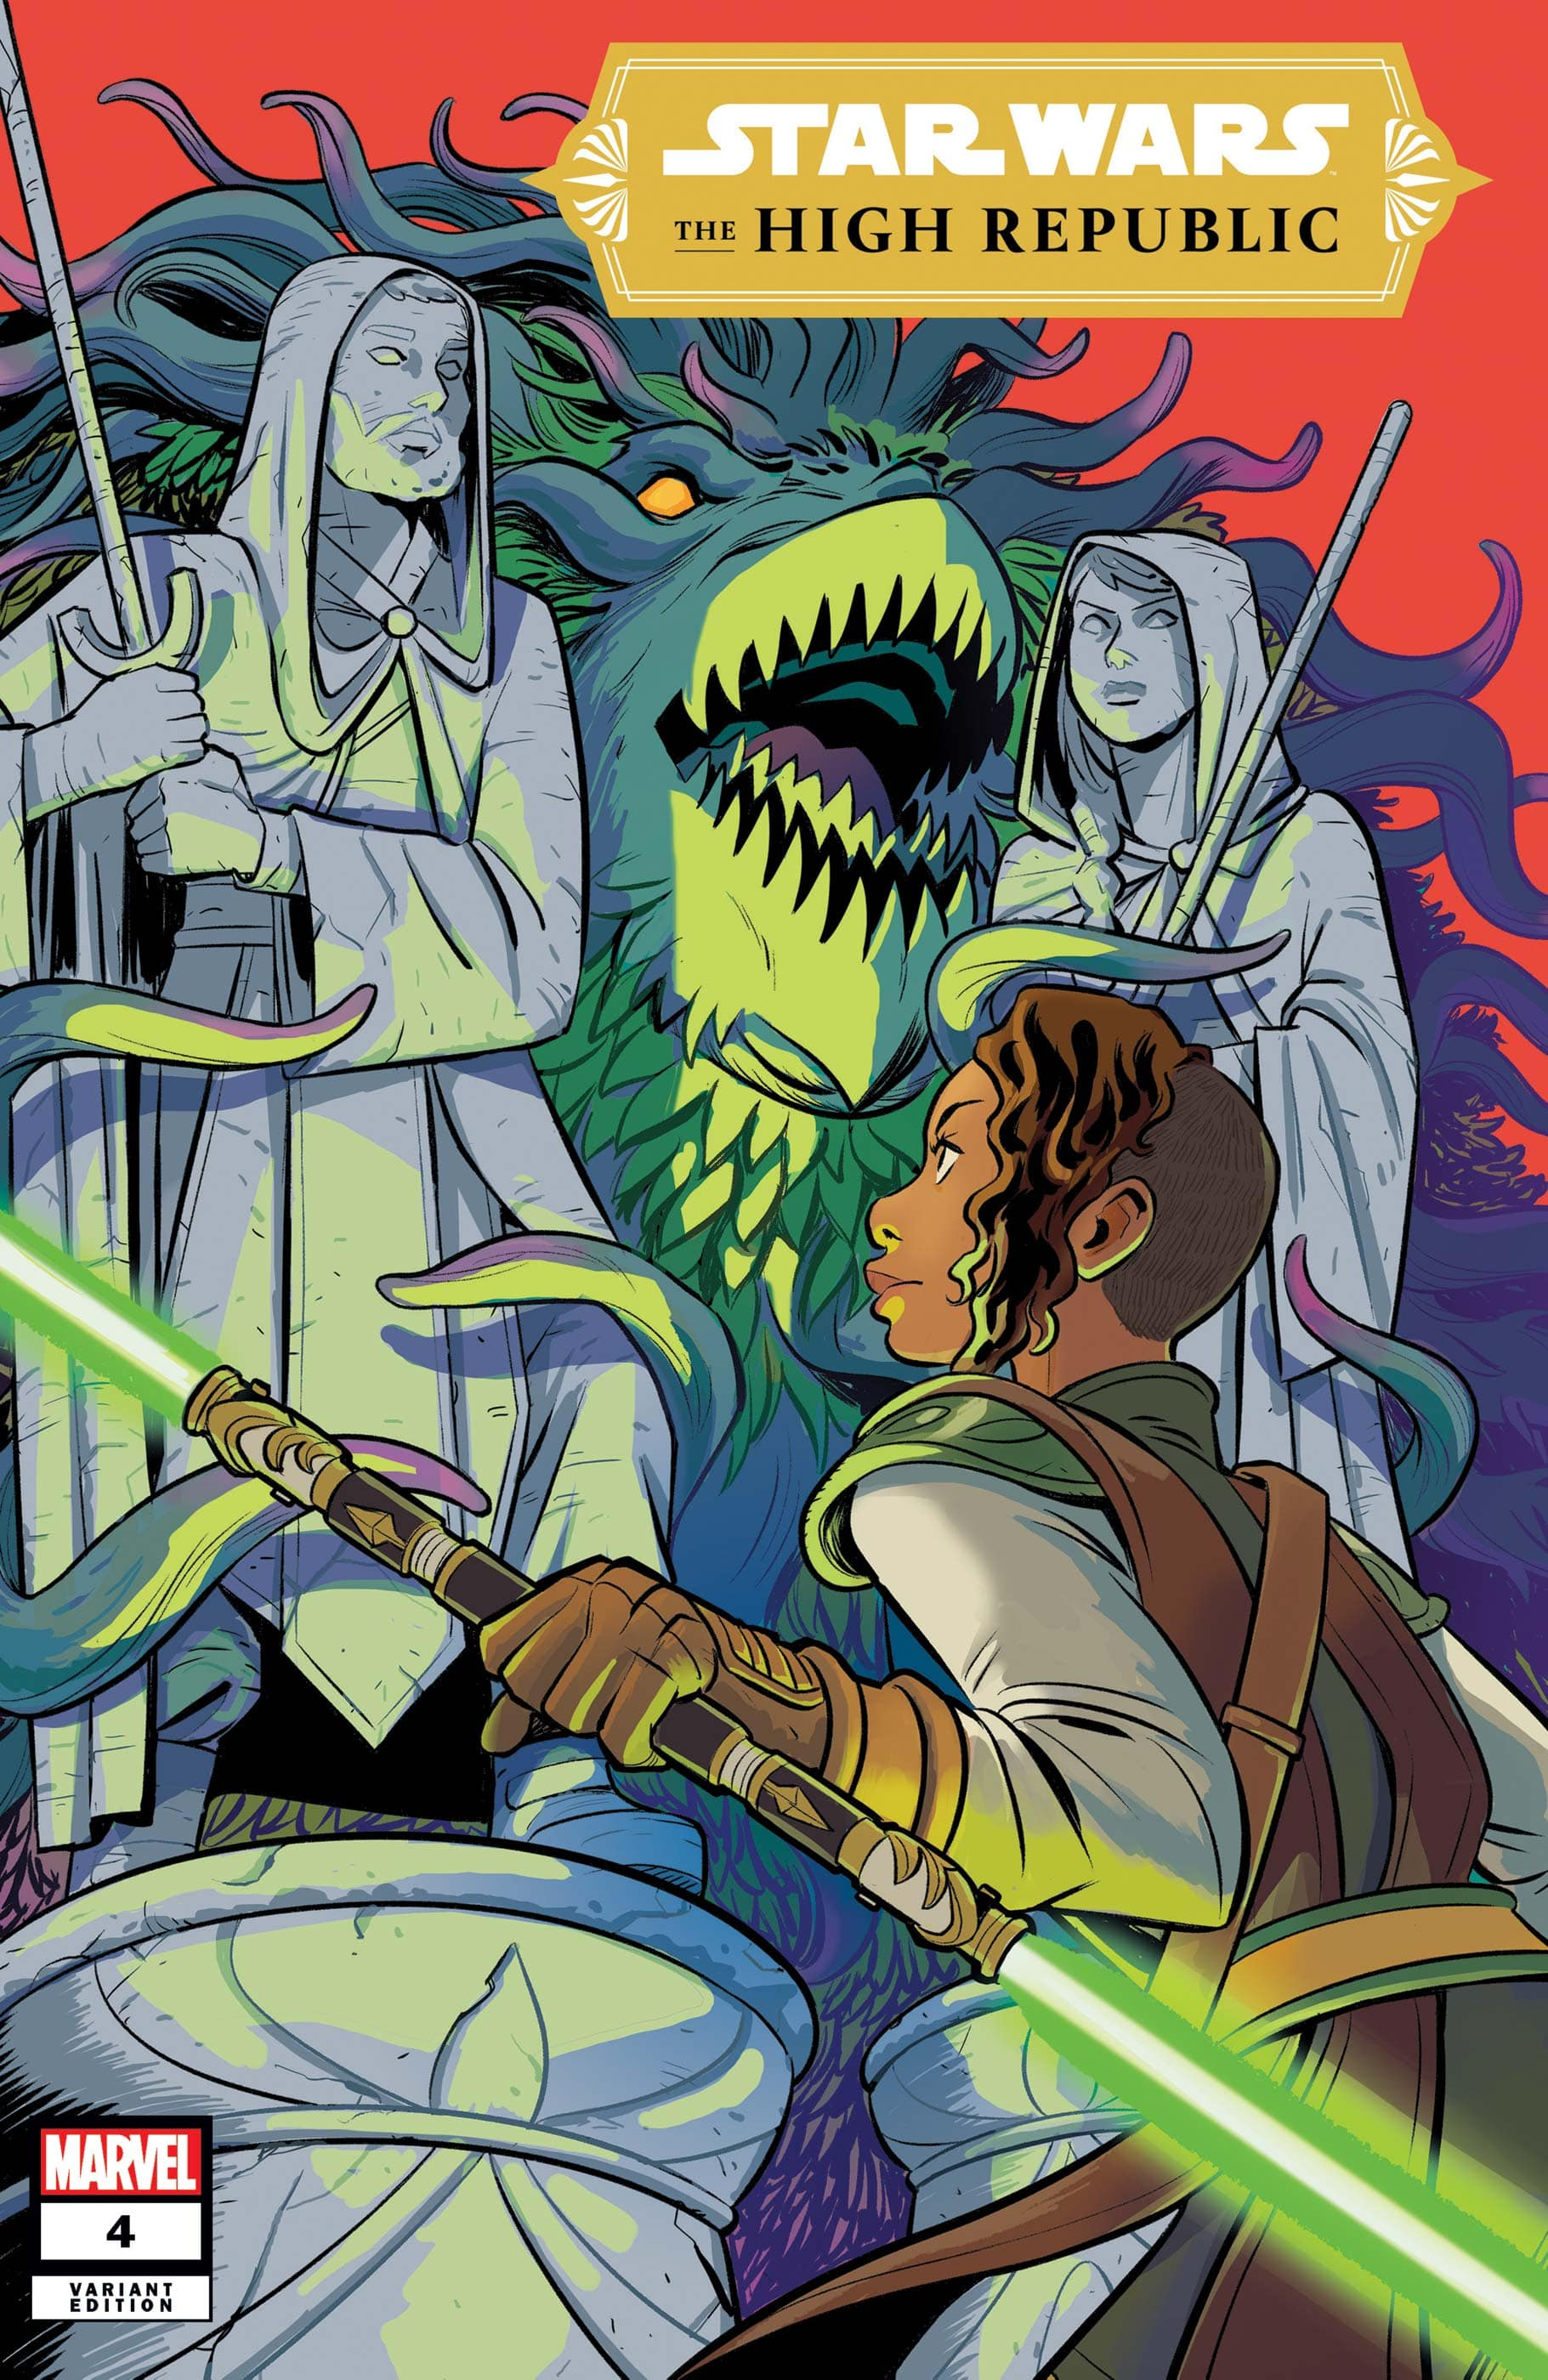 Star Wars: The High Republic #4 Variant Cover by Natacha Bustos